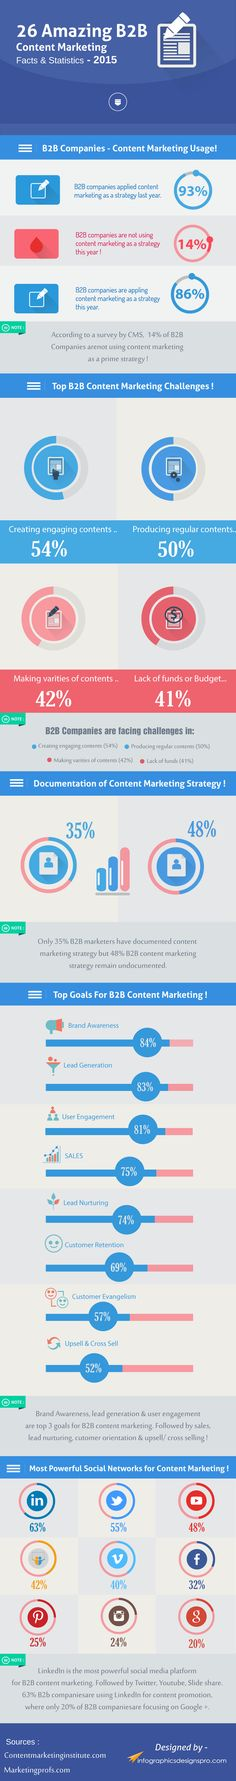 Infographic: 26 Amazing B2B Content Marketing Facts and Statistics - 2015 - @visualistan